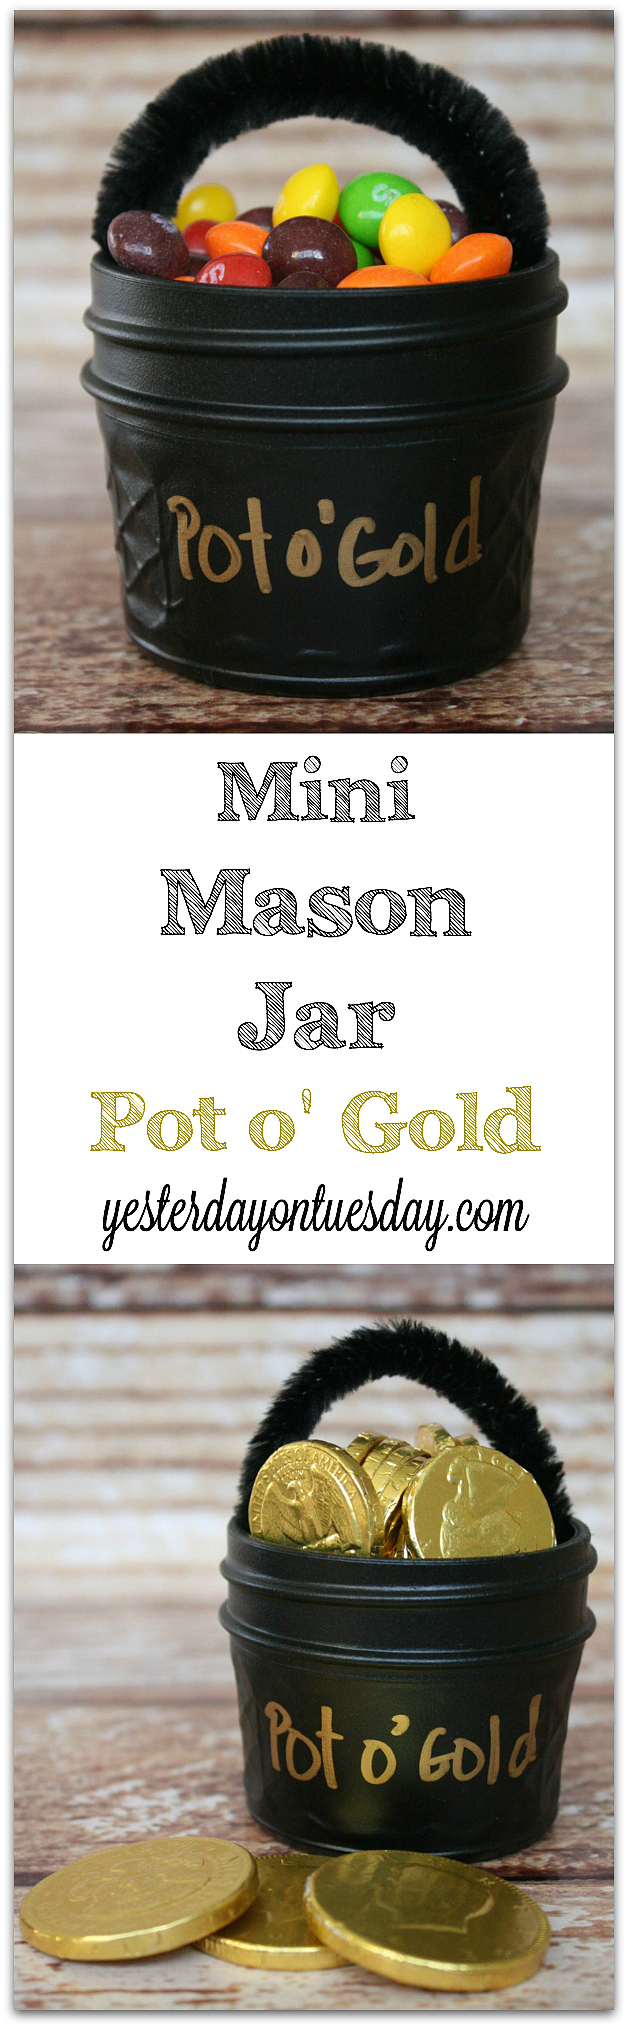 A whimsical St. Patrick's Day gift idea: Mini Mason Jar Pot o' Gold #masonjars